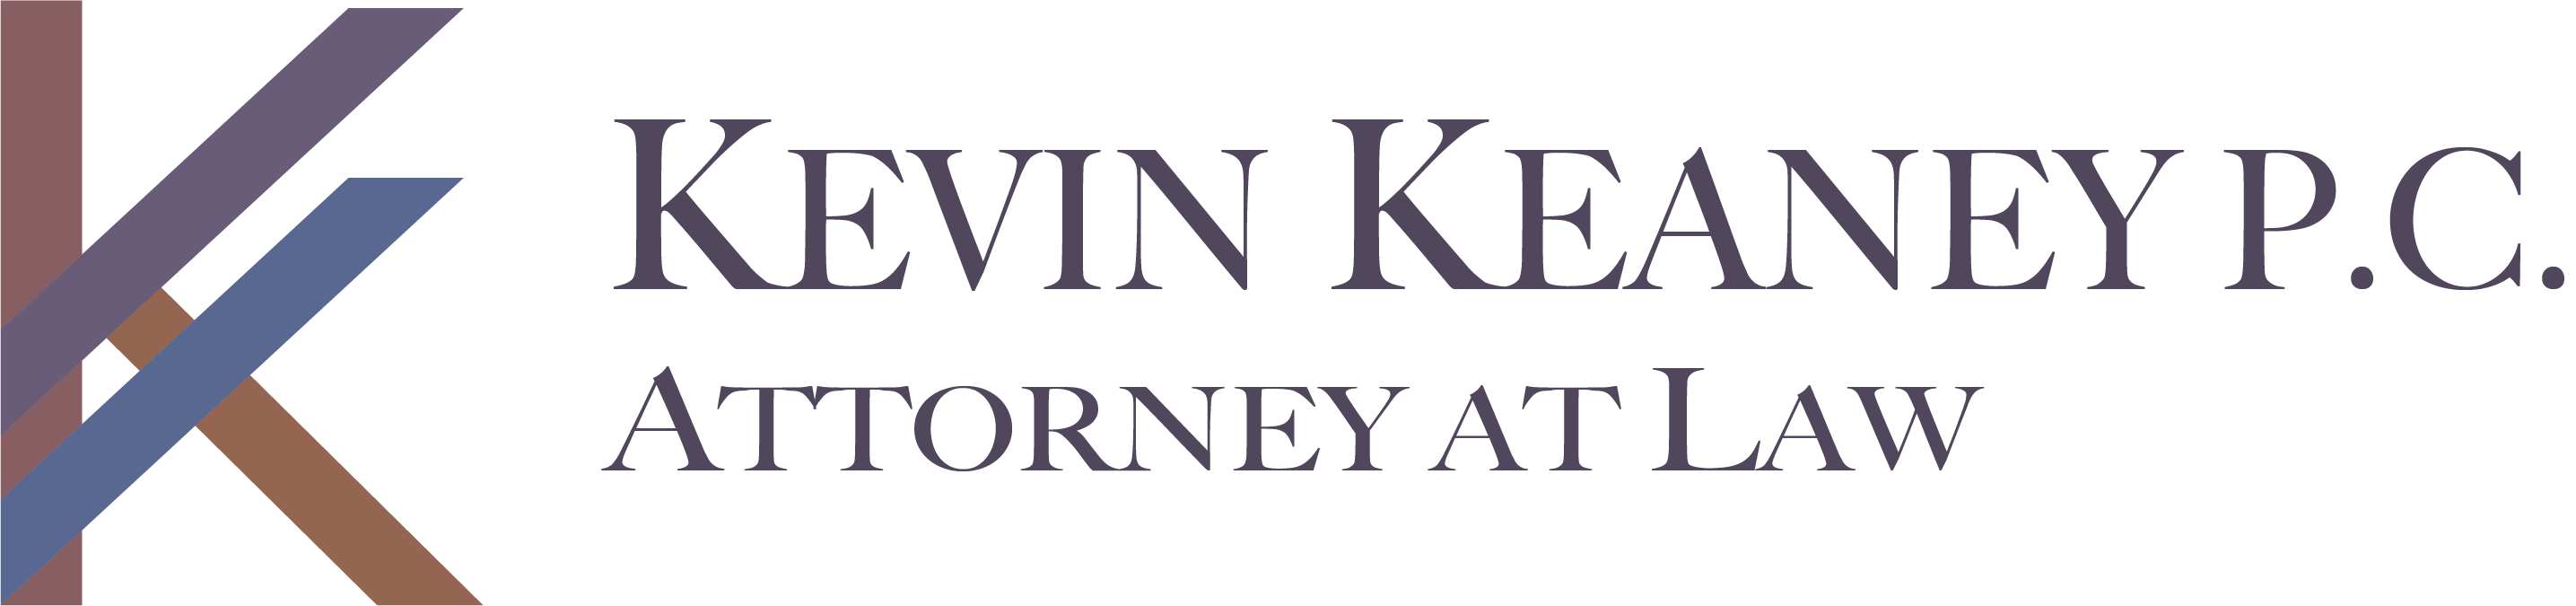 Kevin Keaney P.C. - Attorney At Law